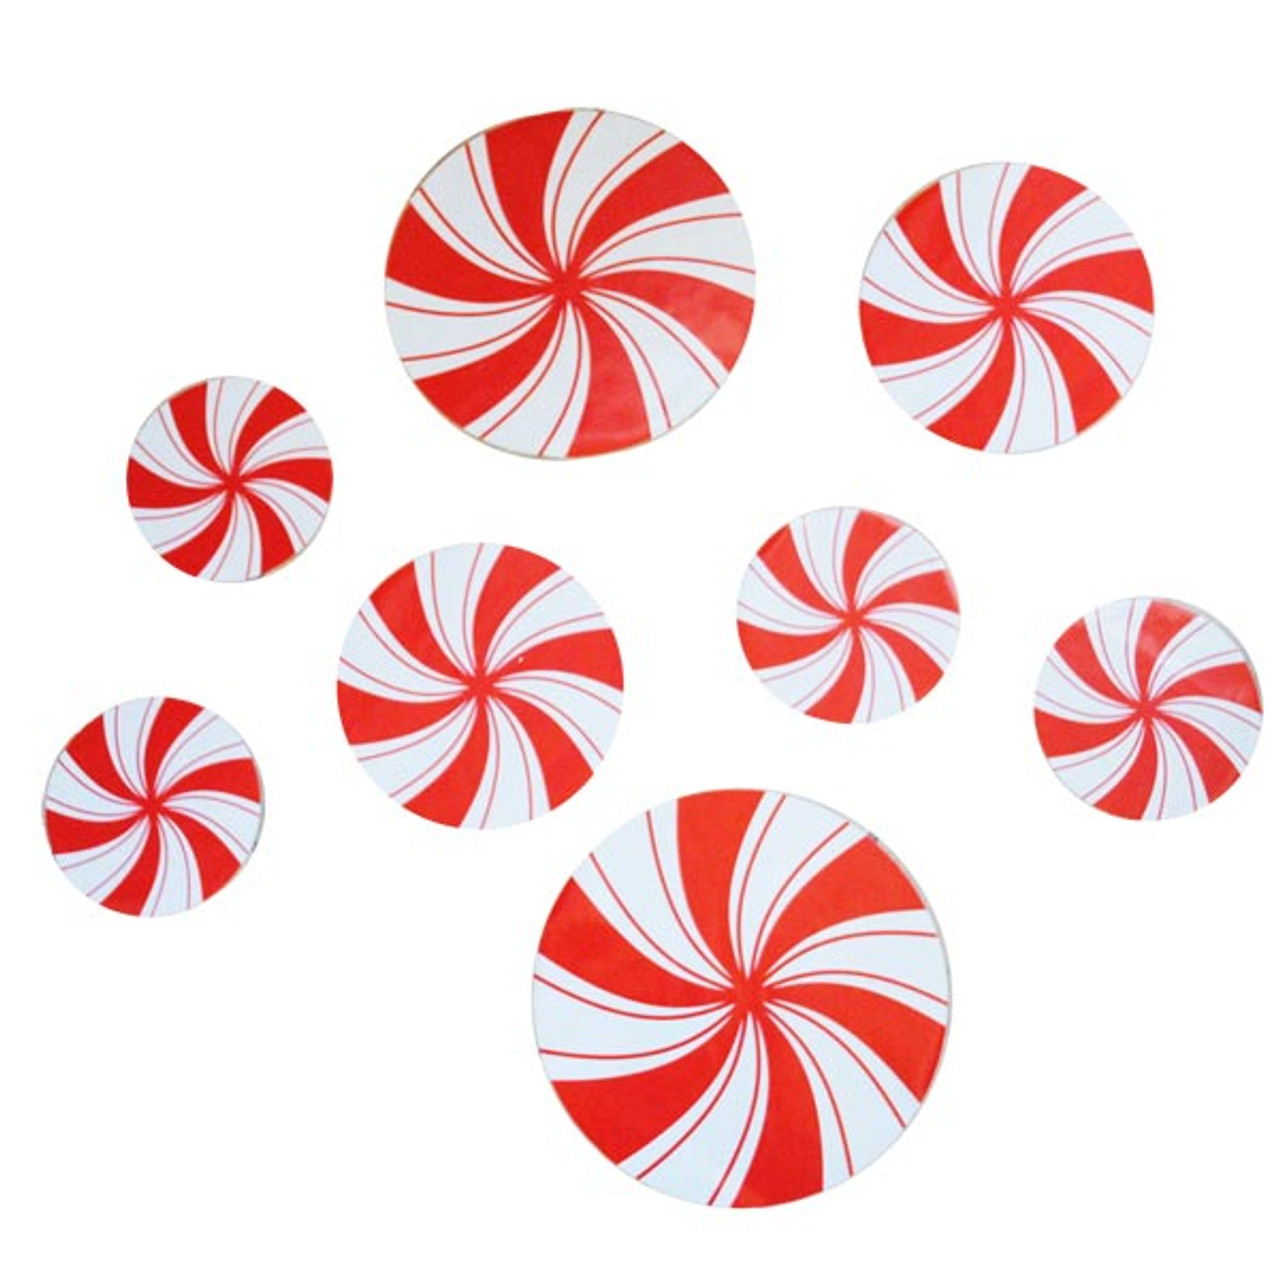 Peppermint Candy Floor Decals Fun Christmas Decoration